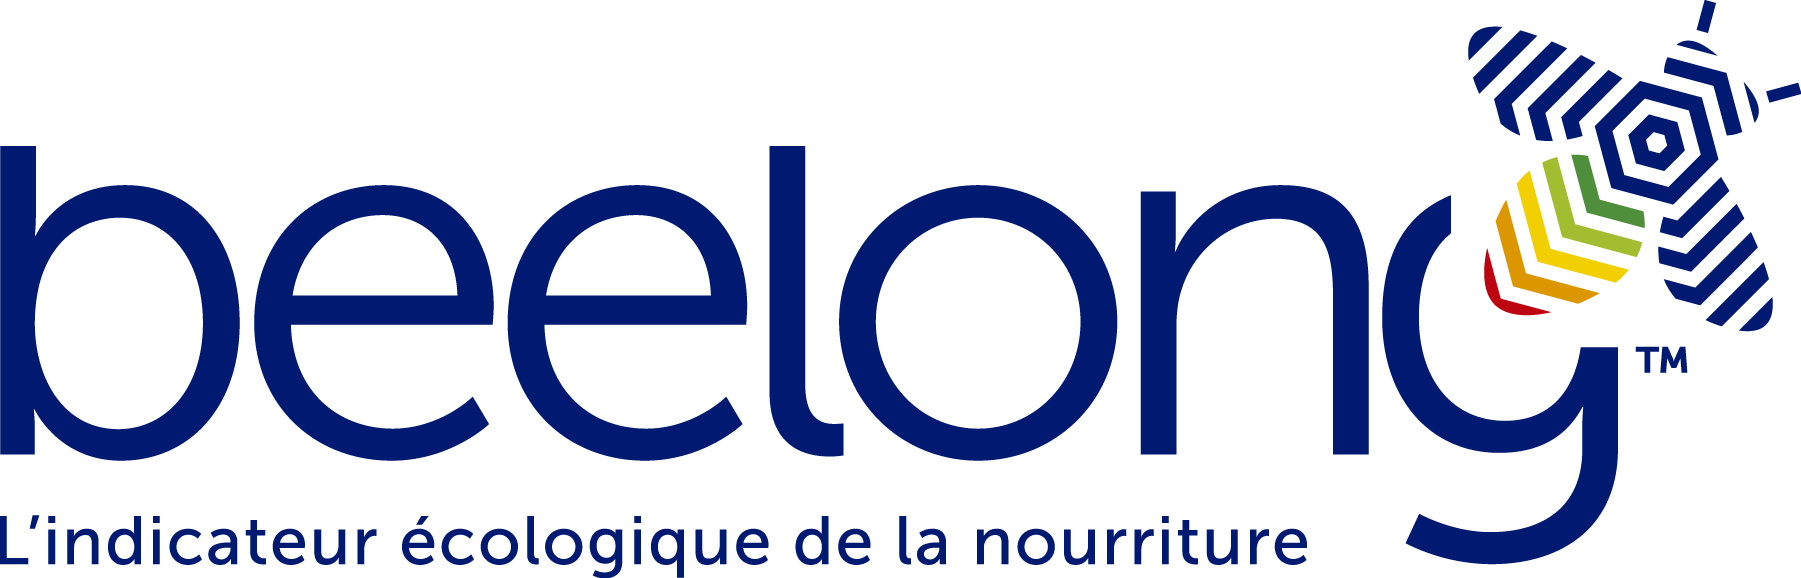 Beelong-logo2x